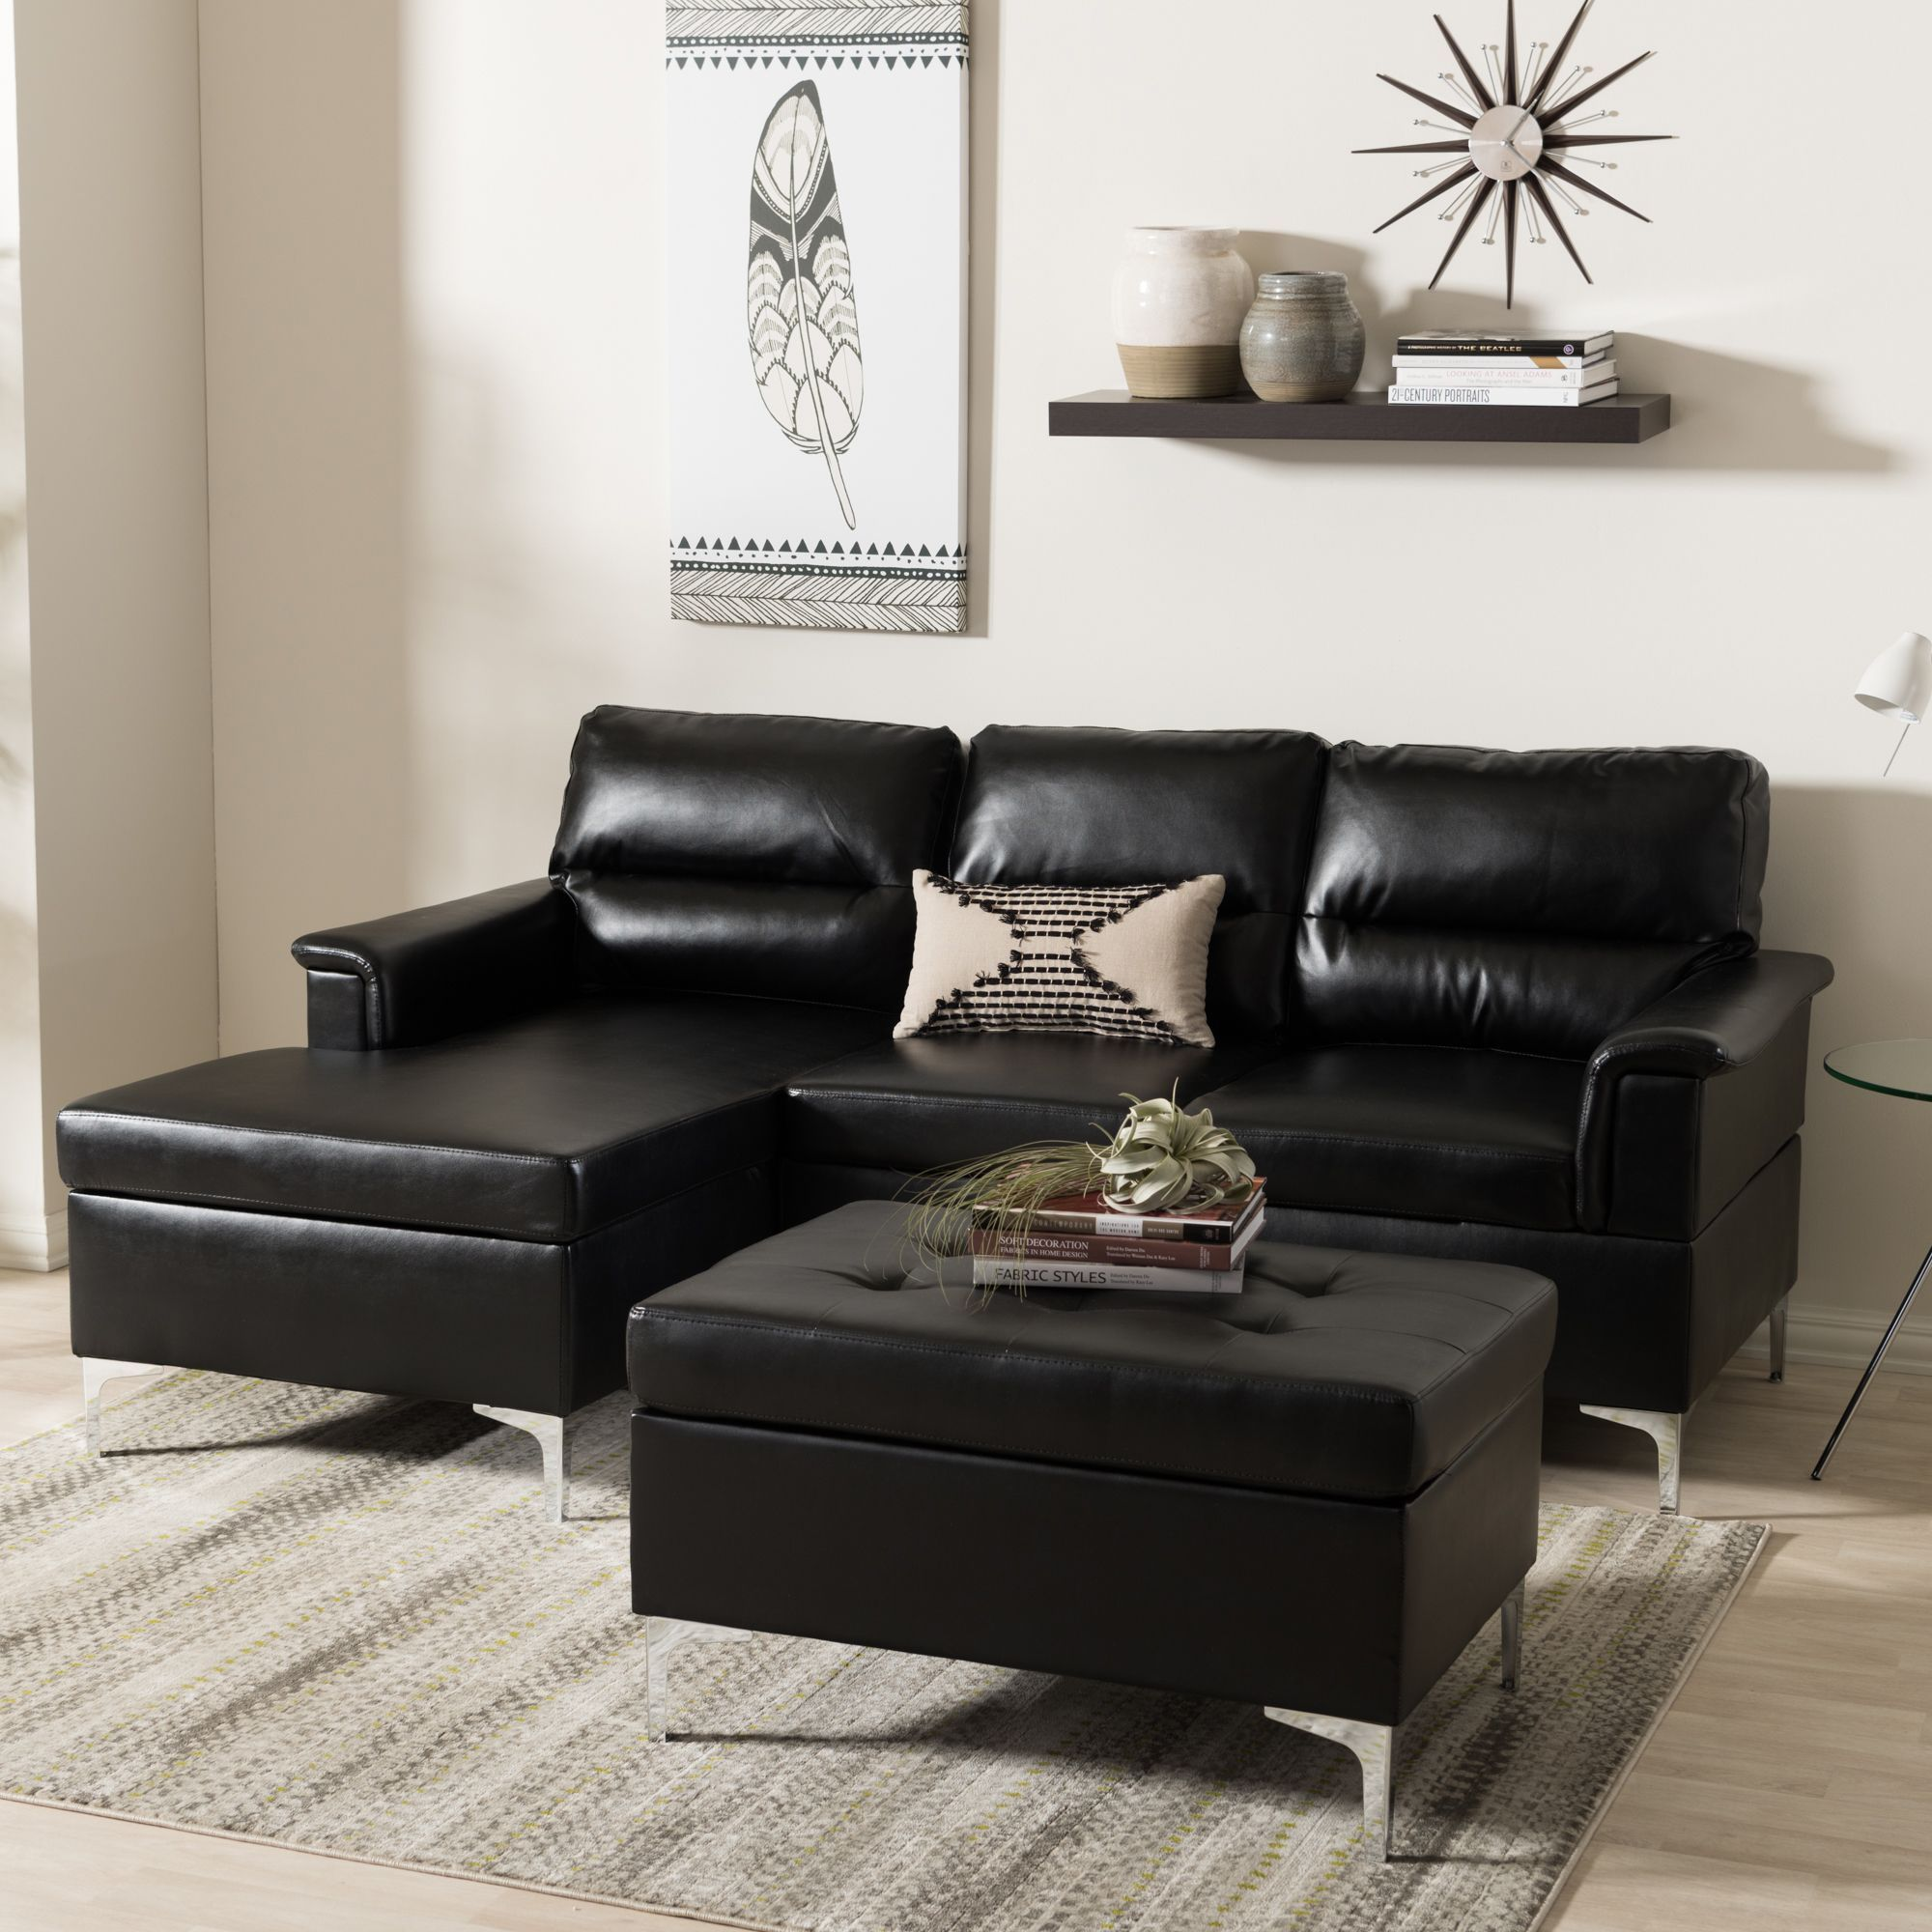 Baxton Studio Hagne Modern Black Faux Leather Sectional Ottoman